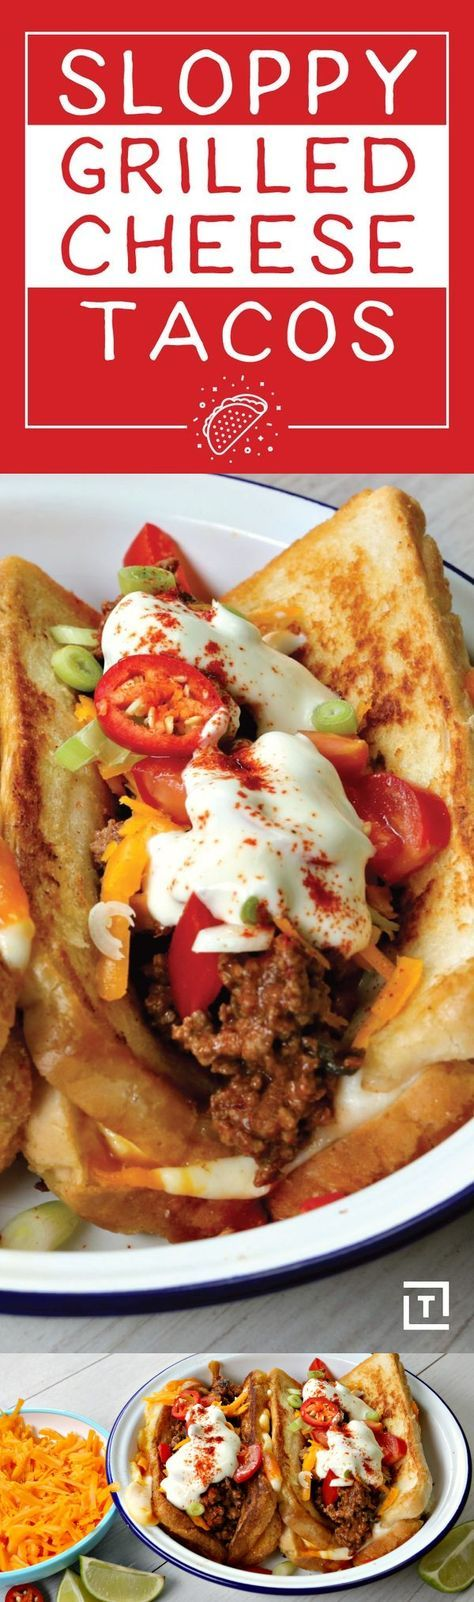 Sloppy Grilled Cheese Taco